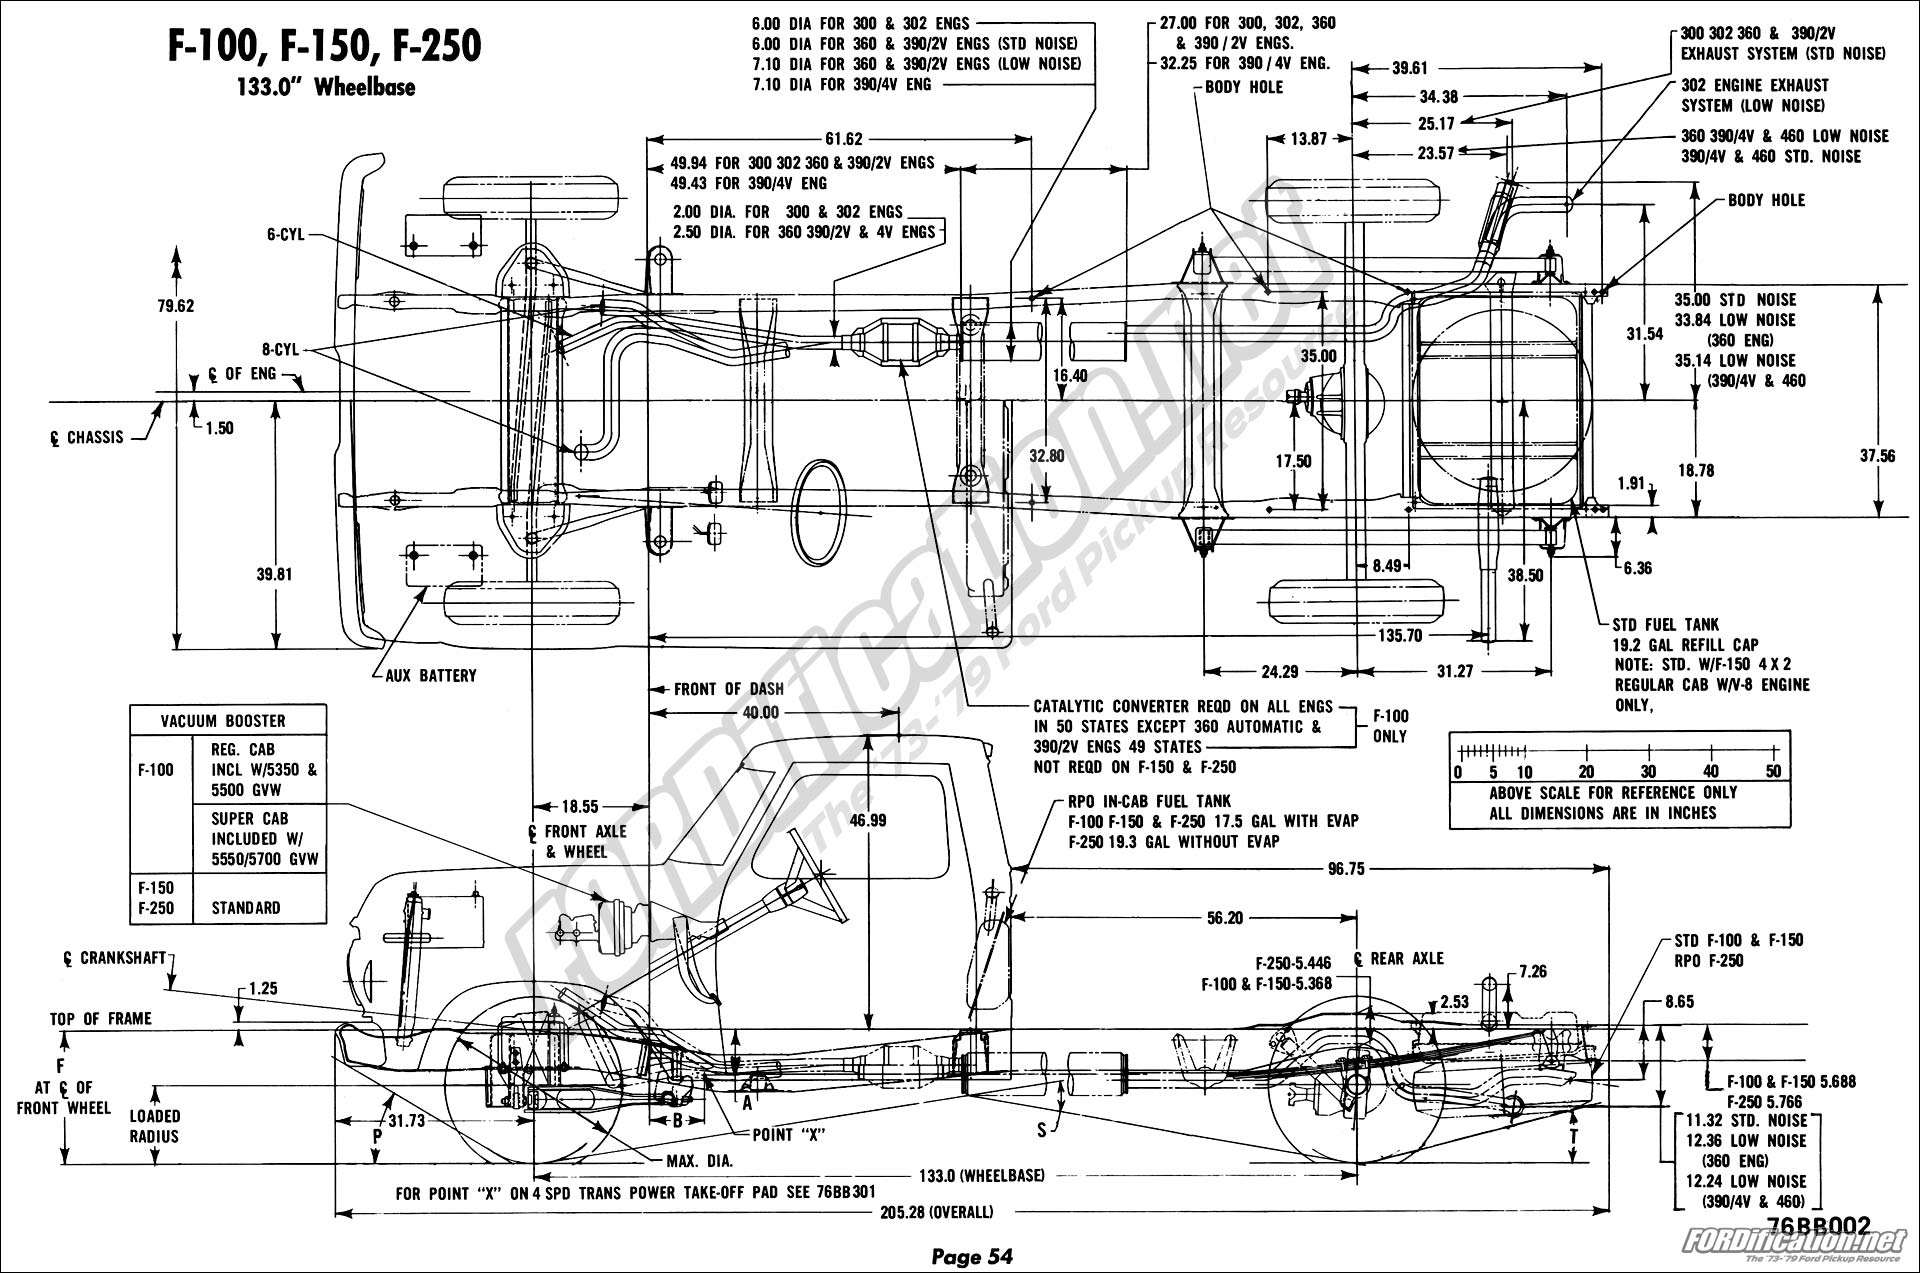 1333138 Re Building A Wrecked F 150 Bent Frame 5 together with Ford 3000 Tractor Instrument Panel Wiring Diagram Free Picture together with 0grj0 Replace Ignition Actuator 1988 furthermore 1992 Mustang Starter Solenoid Wiring Diagram besides Trl. on 1956 ford wiring diagram